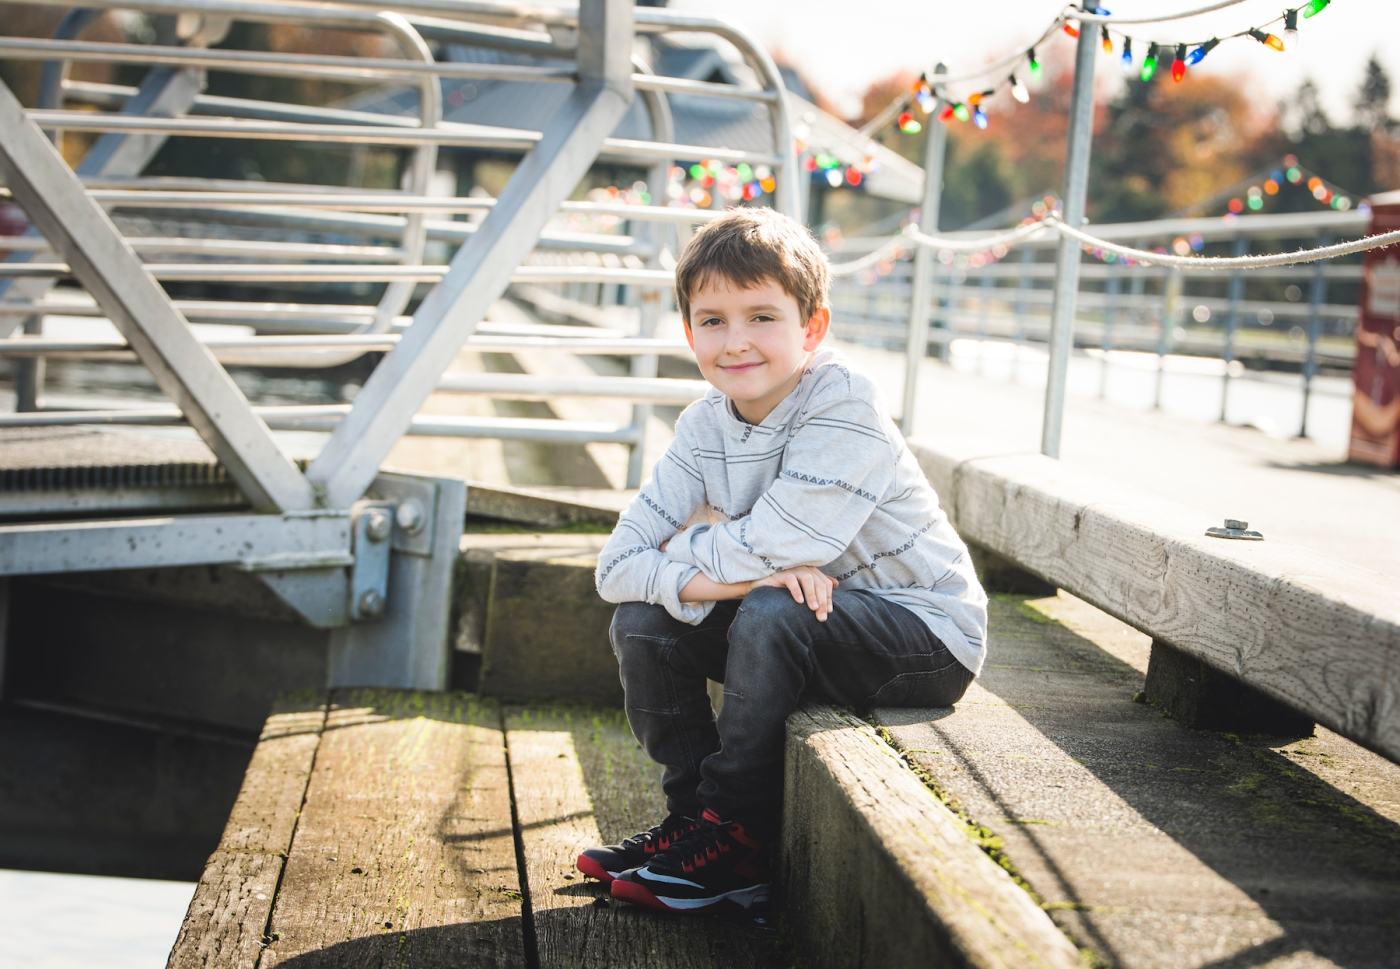 janes_photography_2016_coulon_park_renton_family_session_spencer8144